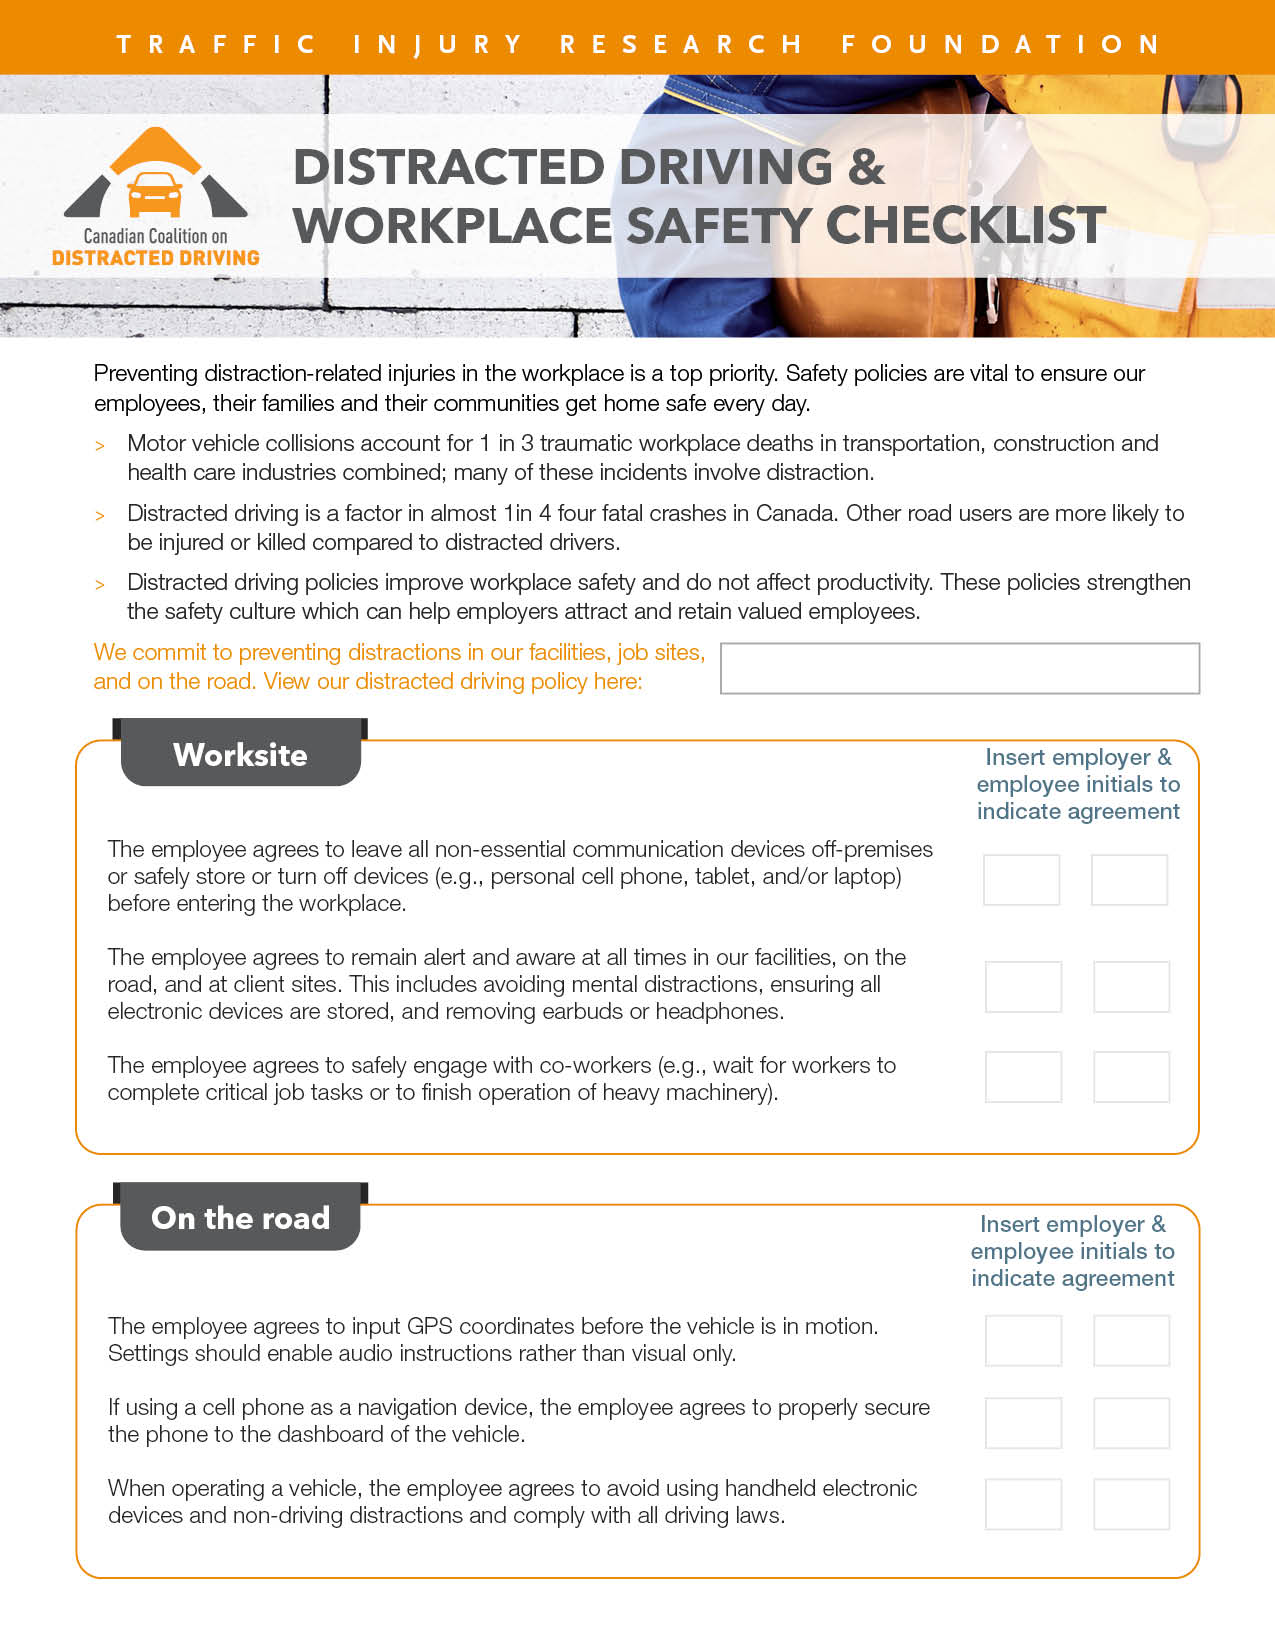 Distracted Driving & Workplace Safety Checklist